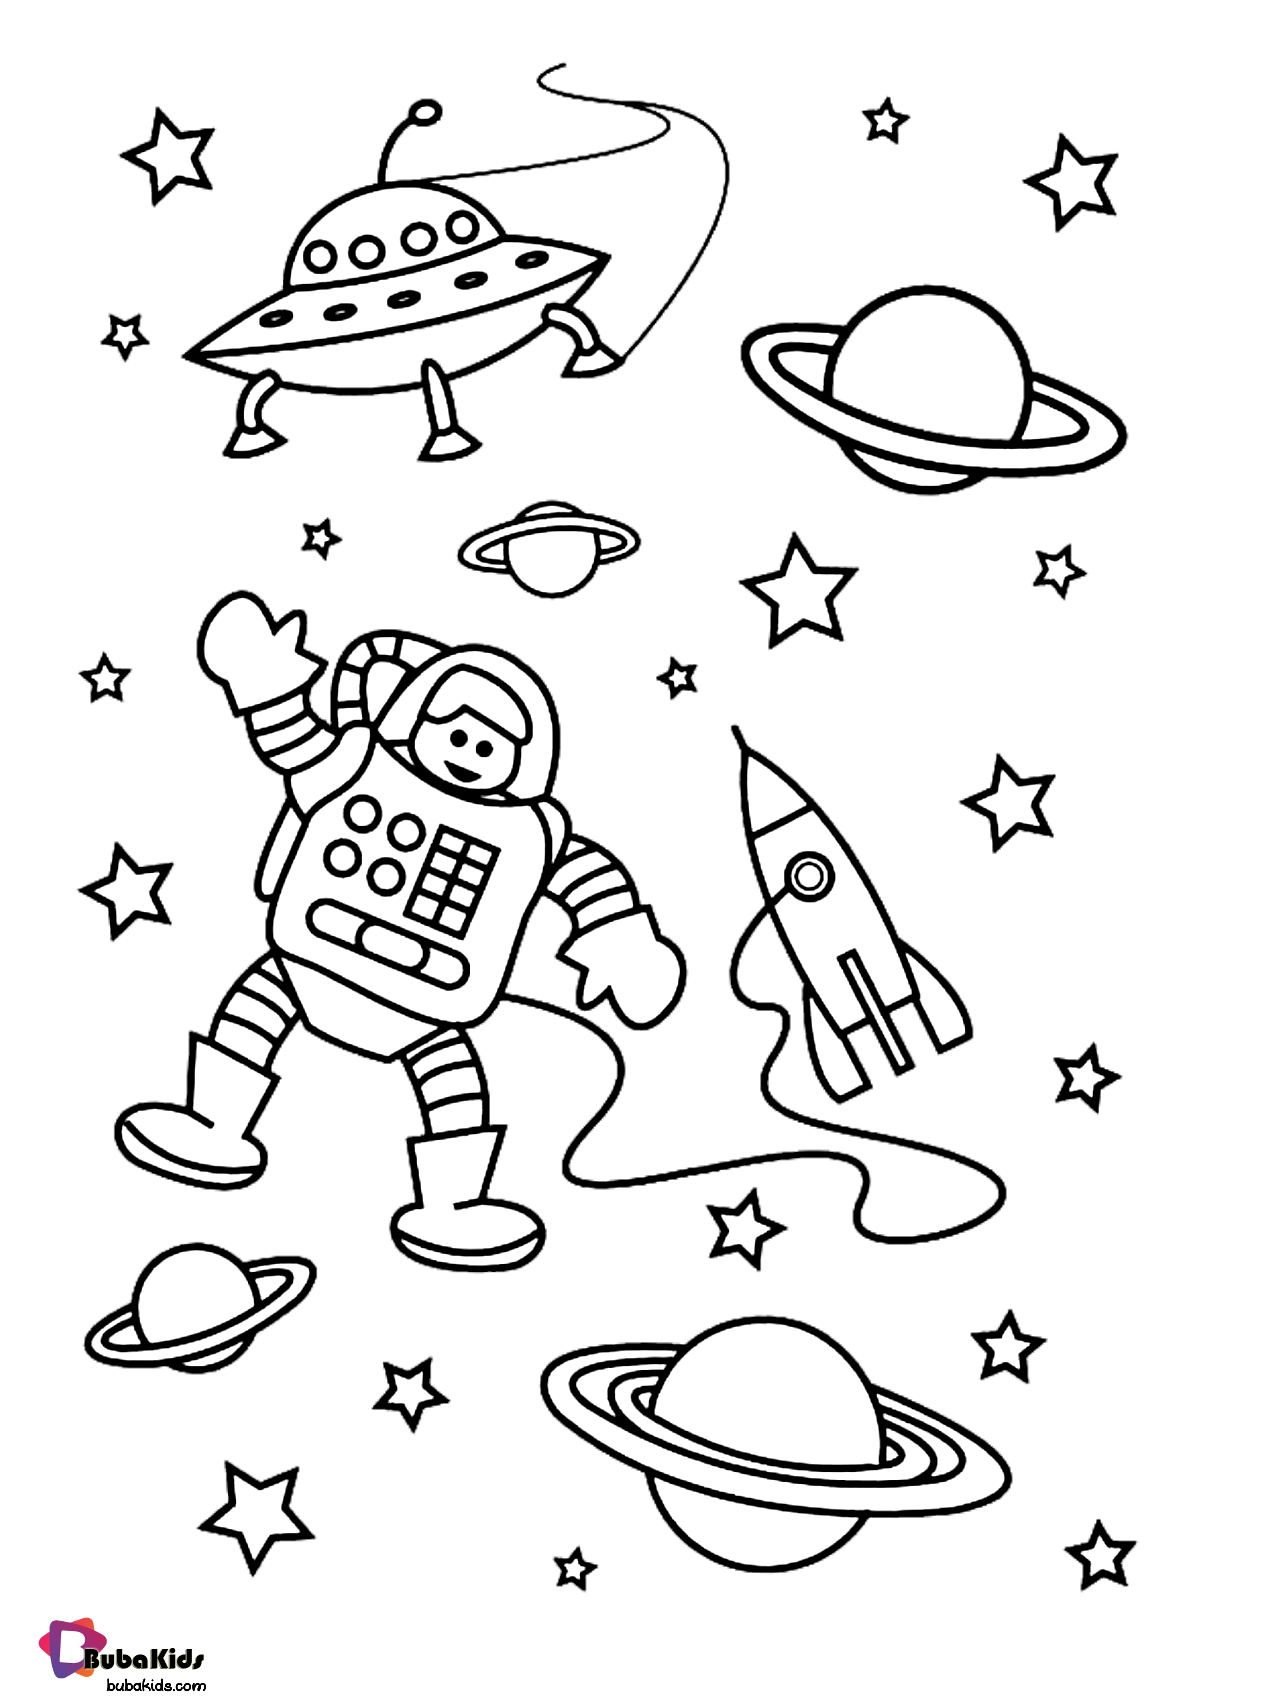 Astronaut In Outer Space Coloring Page Free Download To Print Collection Of Cartoon Coloring In 2020 Space Coloring Pages Planet Coloring Pages Space Coloring Sheet